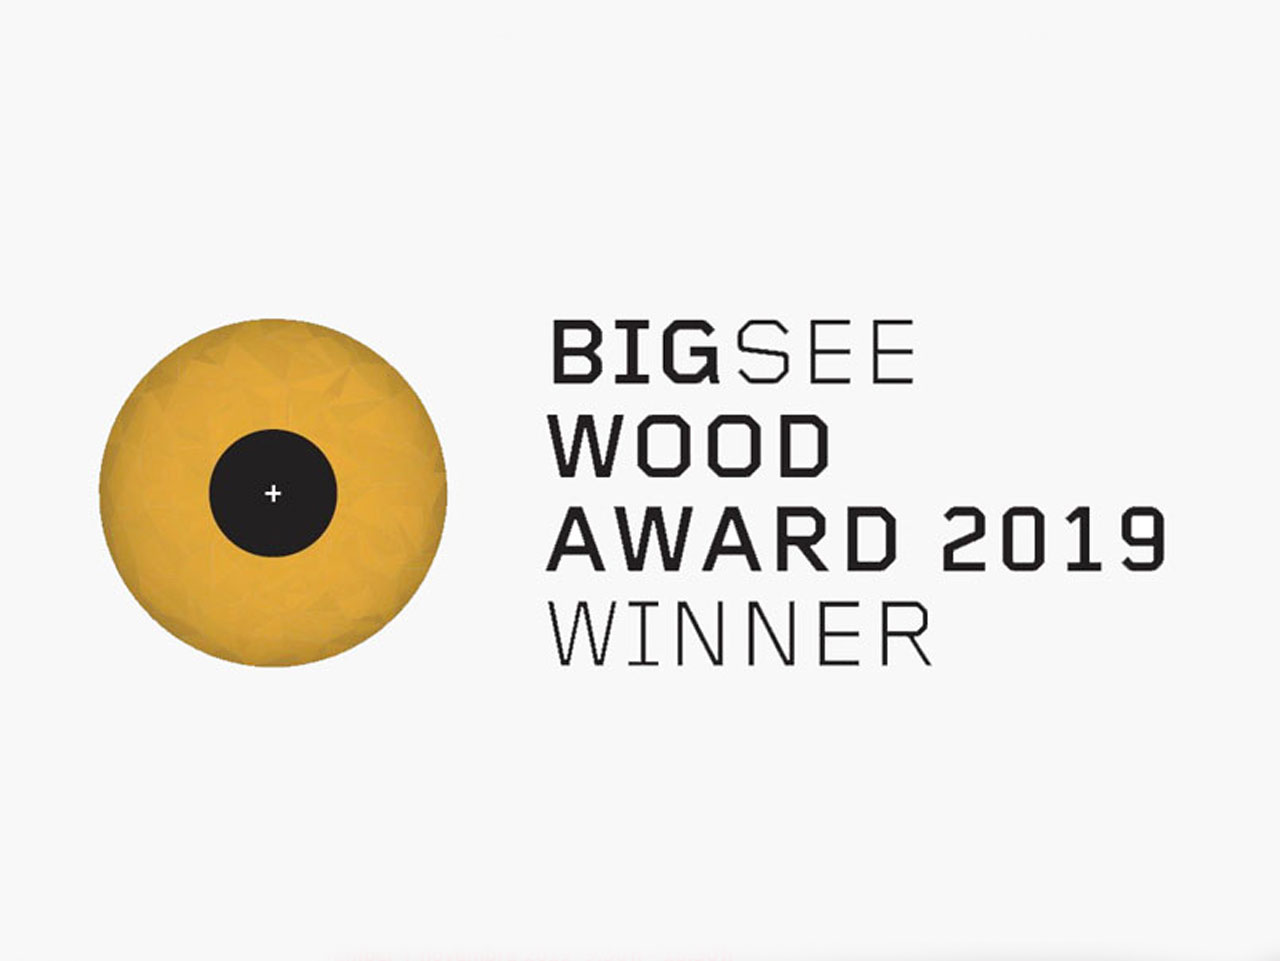 bigsee wood award 2019